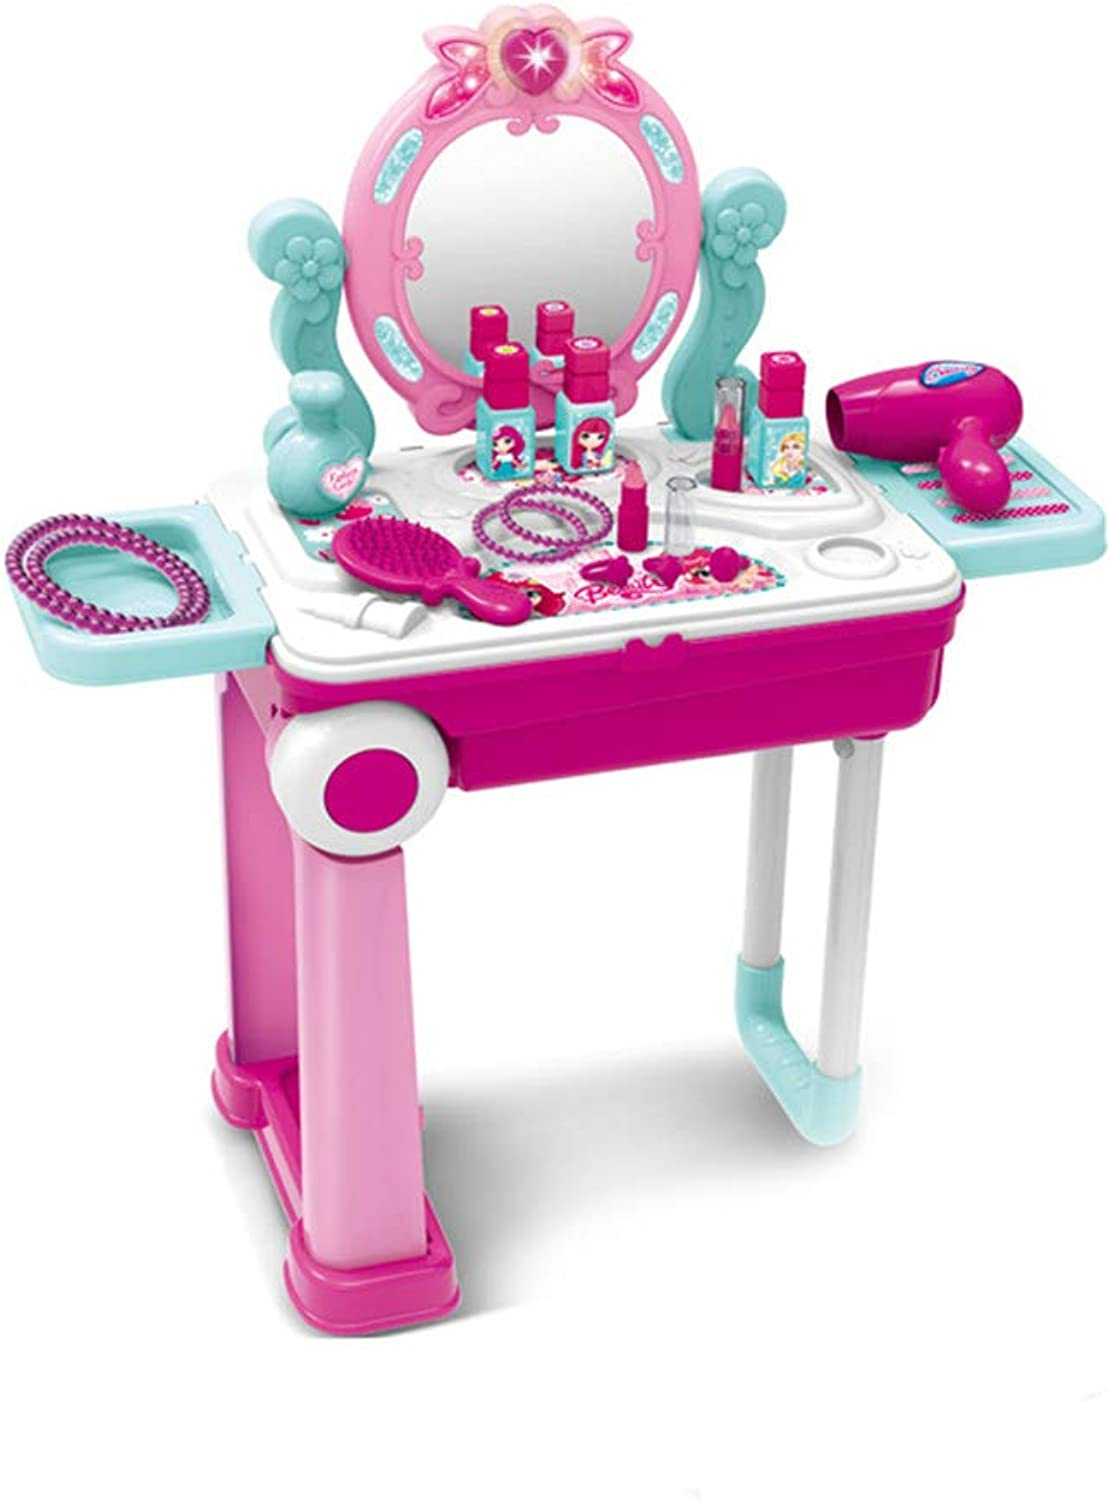 JK Pretend Play Makeup Toy Set Beauty Princess Dressing Table and Suitcase Congreenible Suitcase trolley Portable Role Play Set with Accessories for Girl Kids